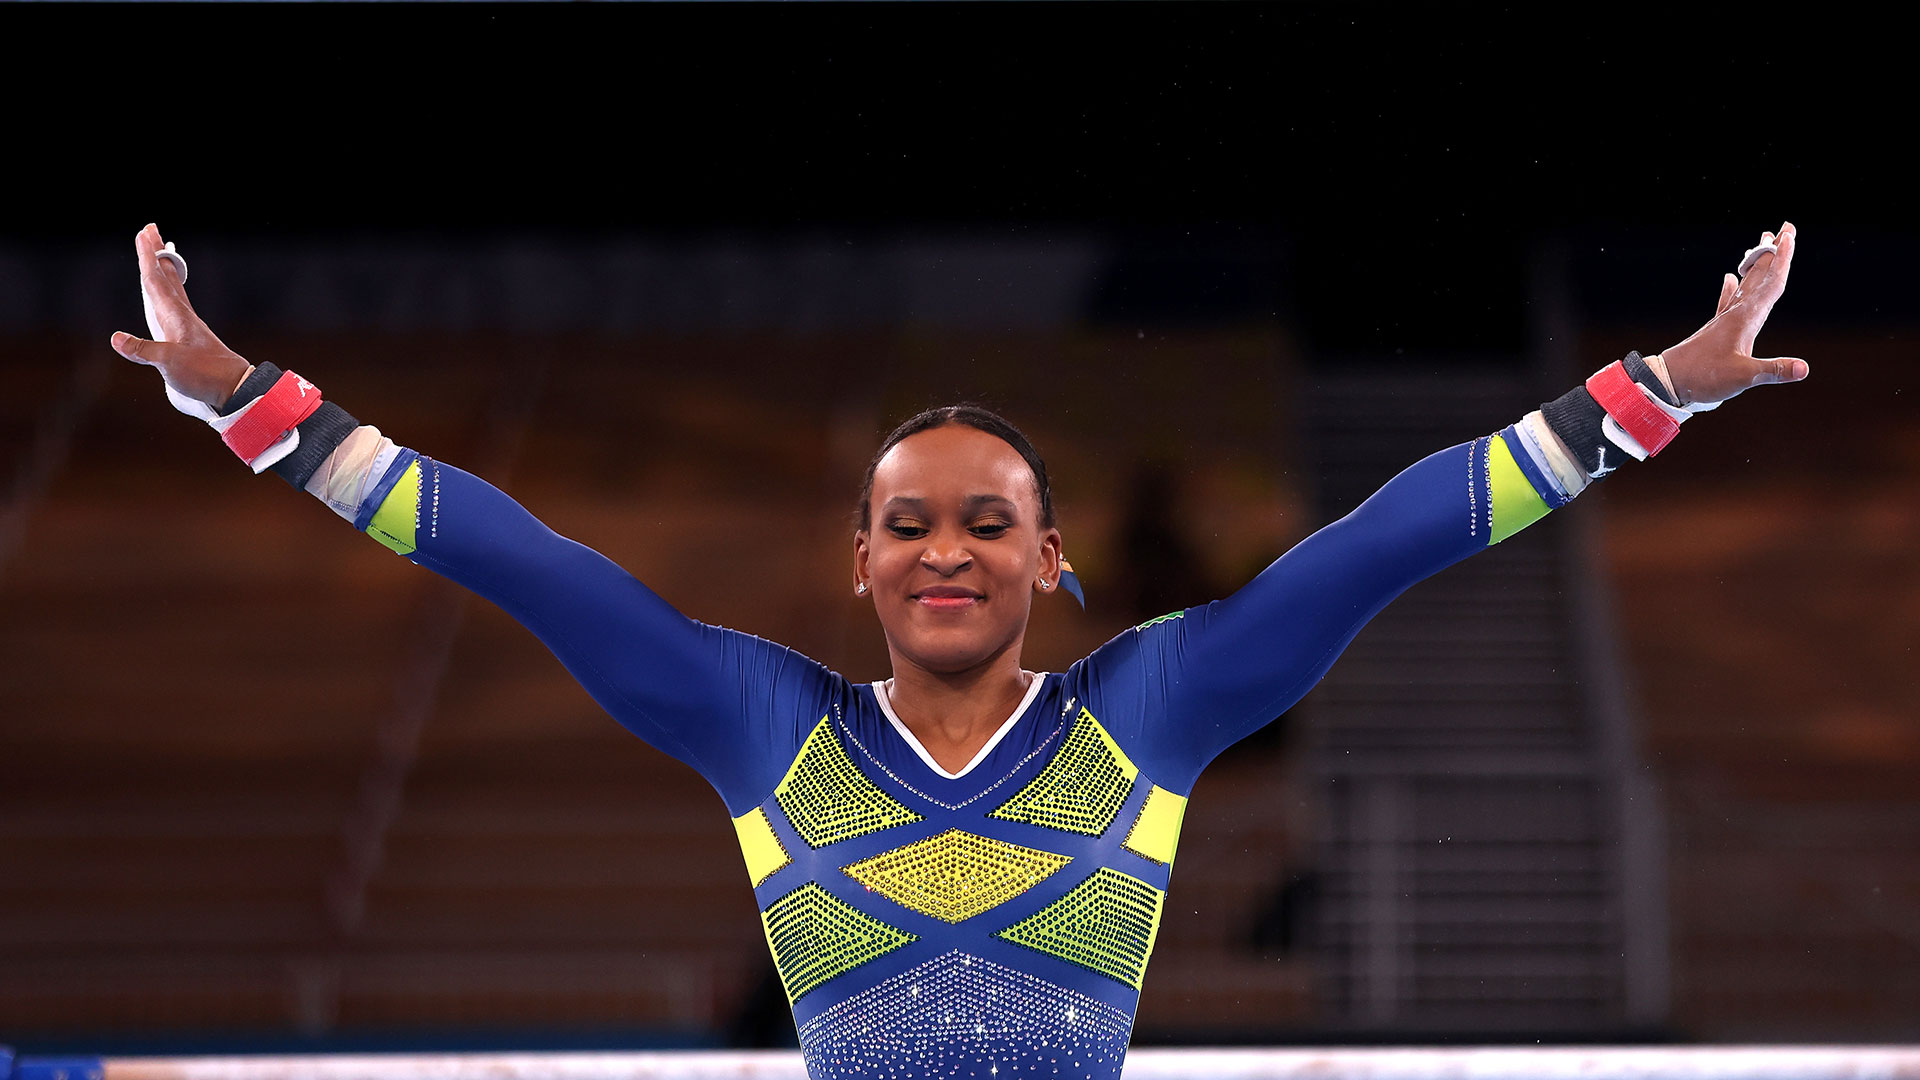 Image for Rebeca Andrade wins silver in All-Around, Brazil's first women's gymnastics medal